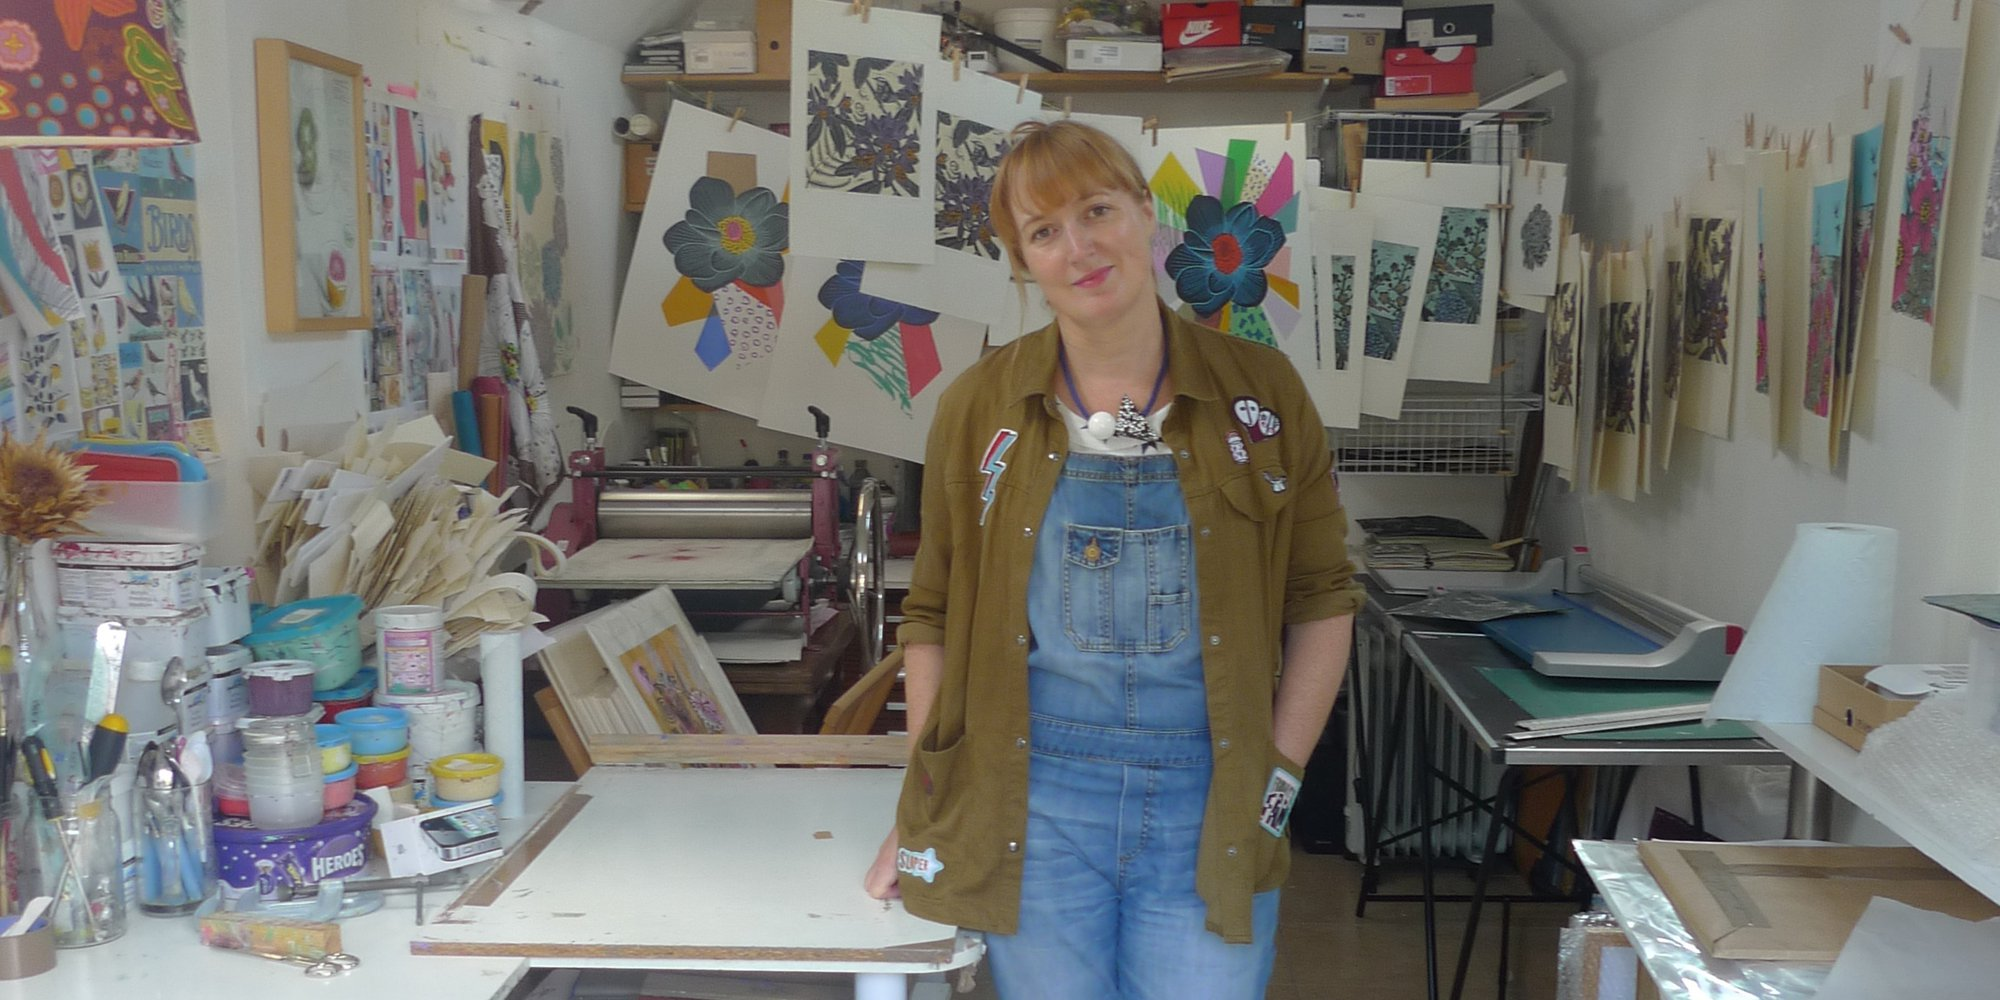 To celebrate the launch of the Cambridge Original Printmakers Biennale we speak to Kate Heiss - printmaker and organiser of the event - about all things print!